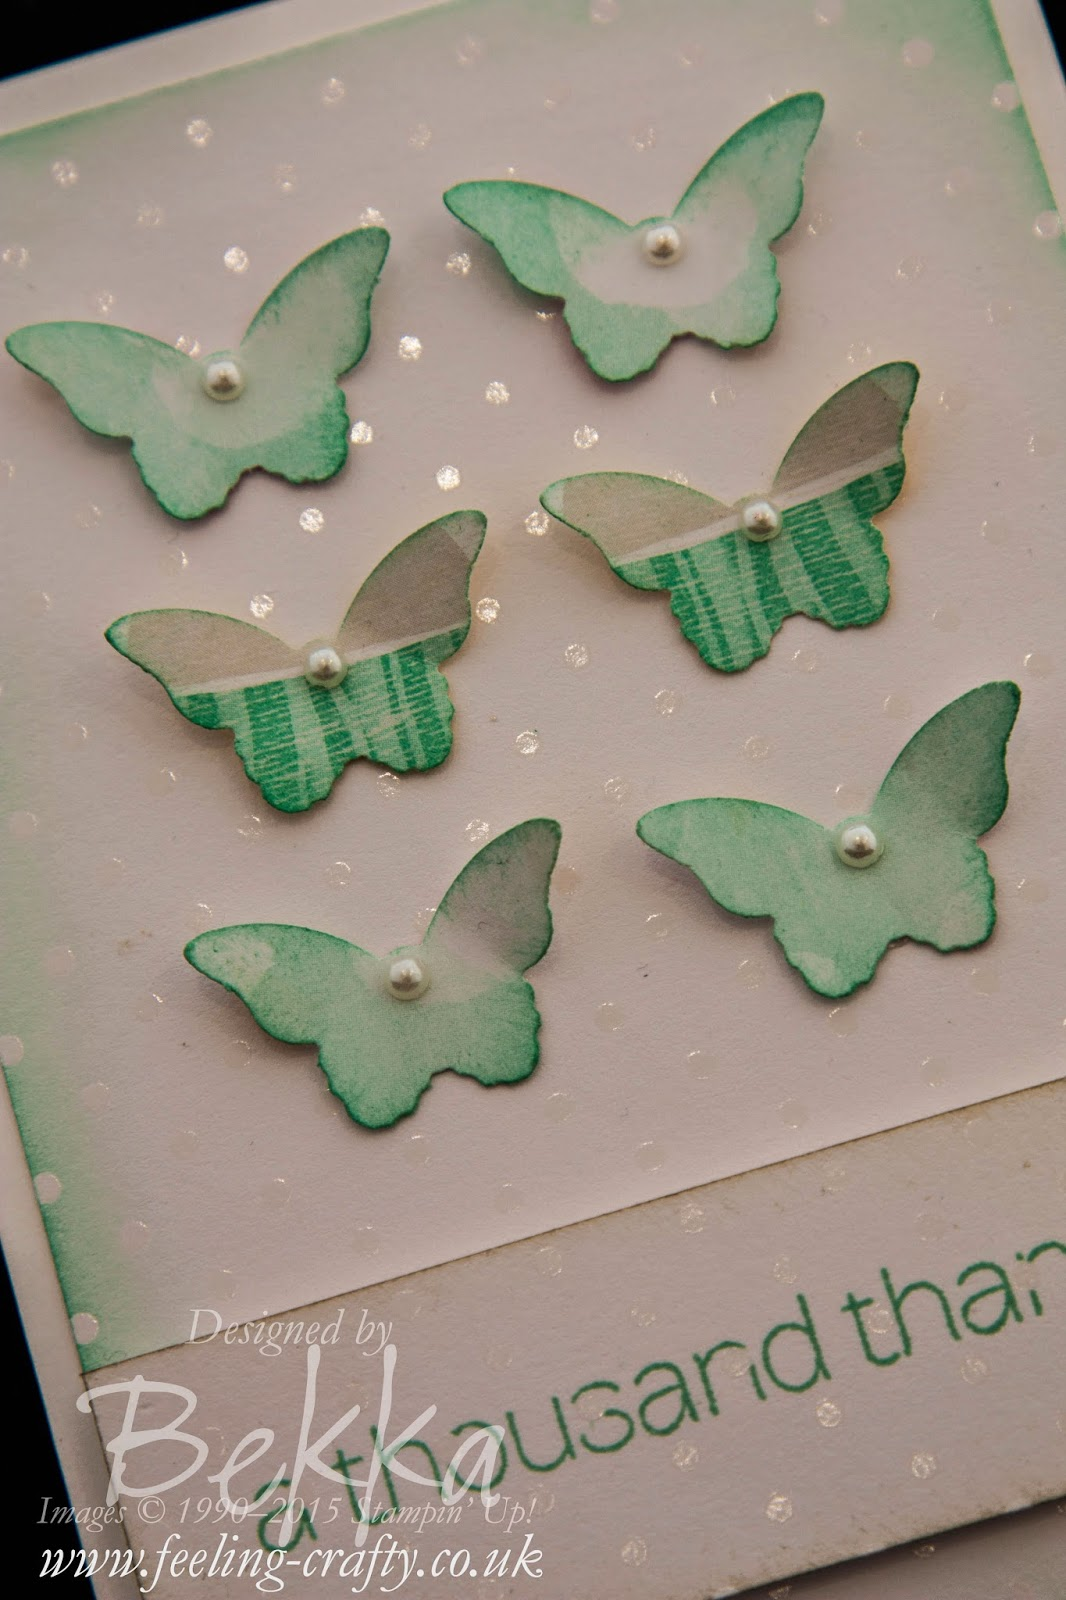 Irresistibly Yours - A Pretty Butterfly Thank You Card - find out how you can get these pretty papers free here